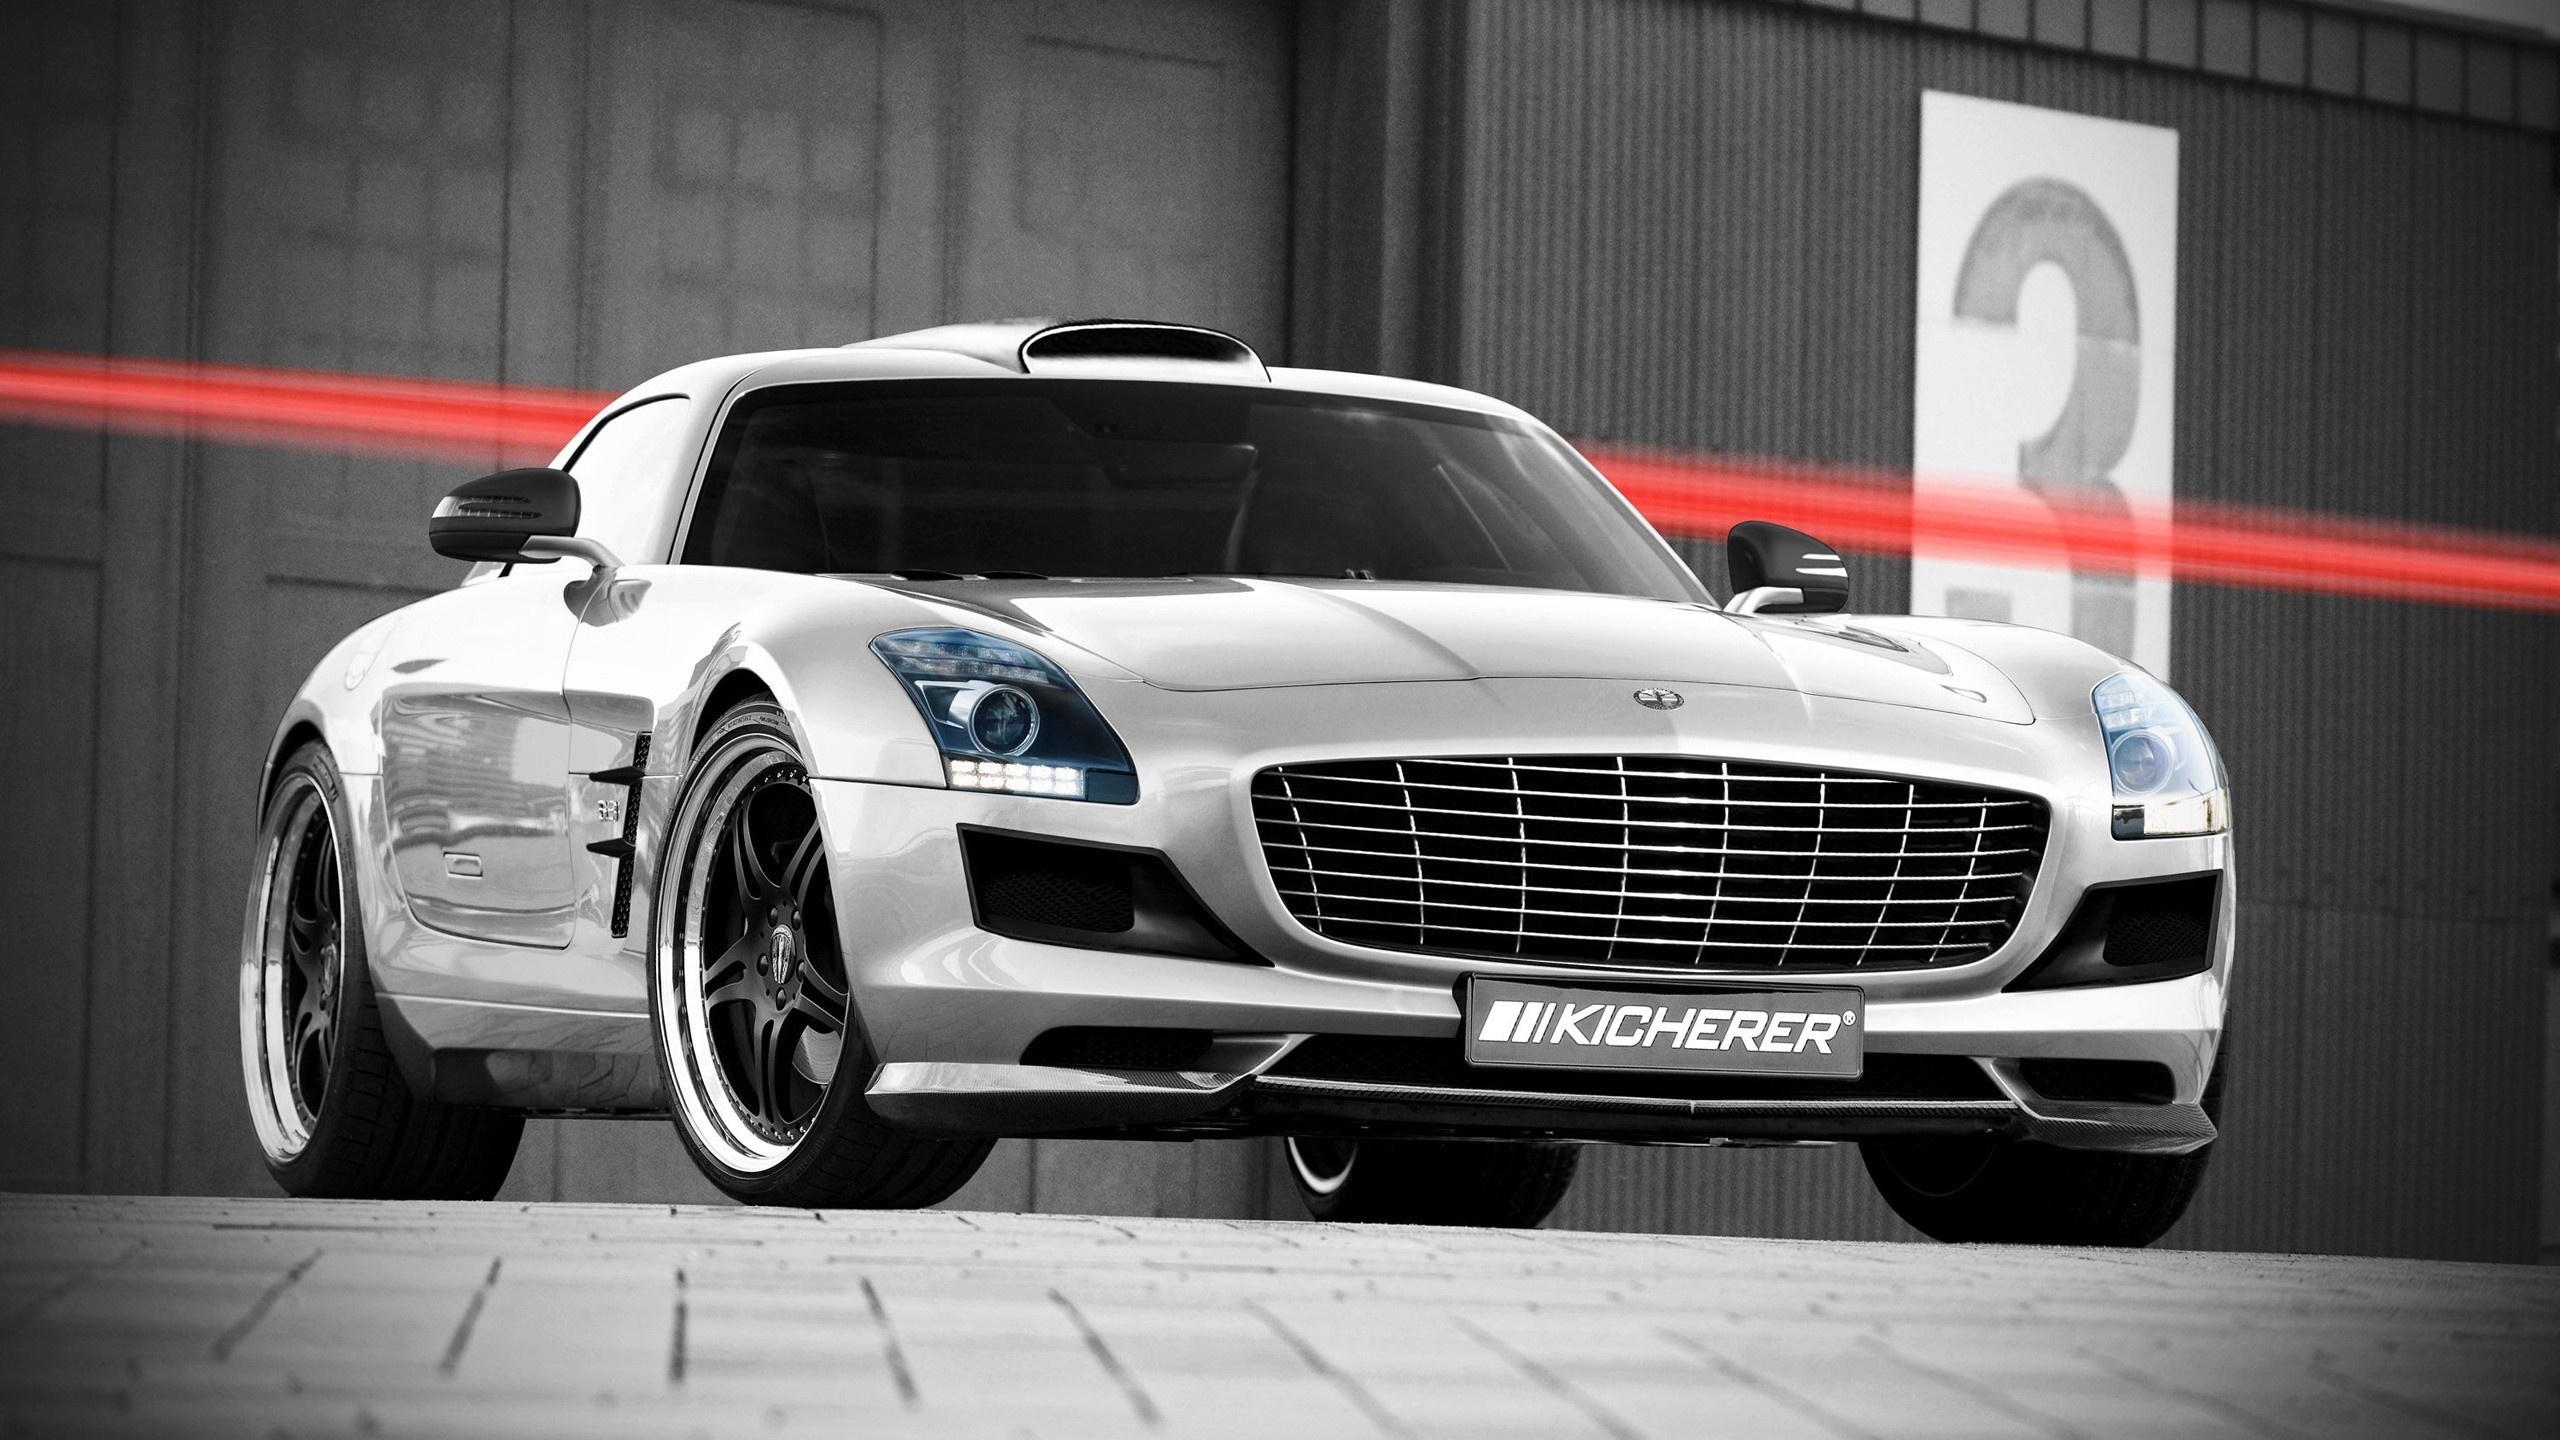 cars Kicherer Mercedes-Benz SLS HD Wallpaper